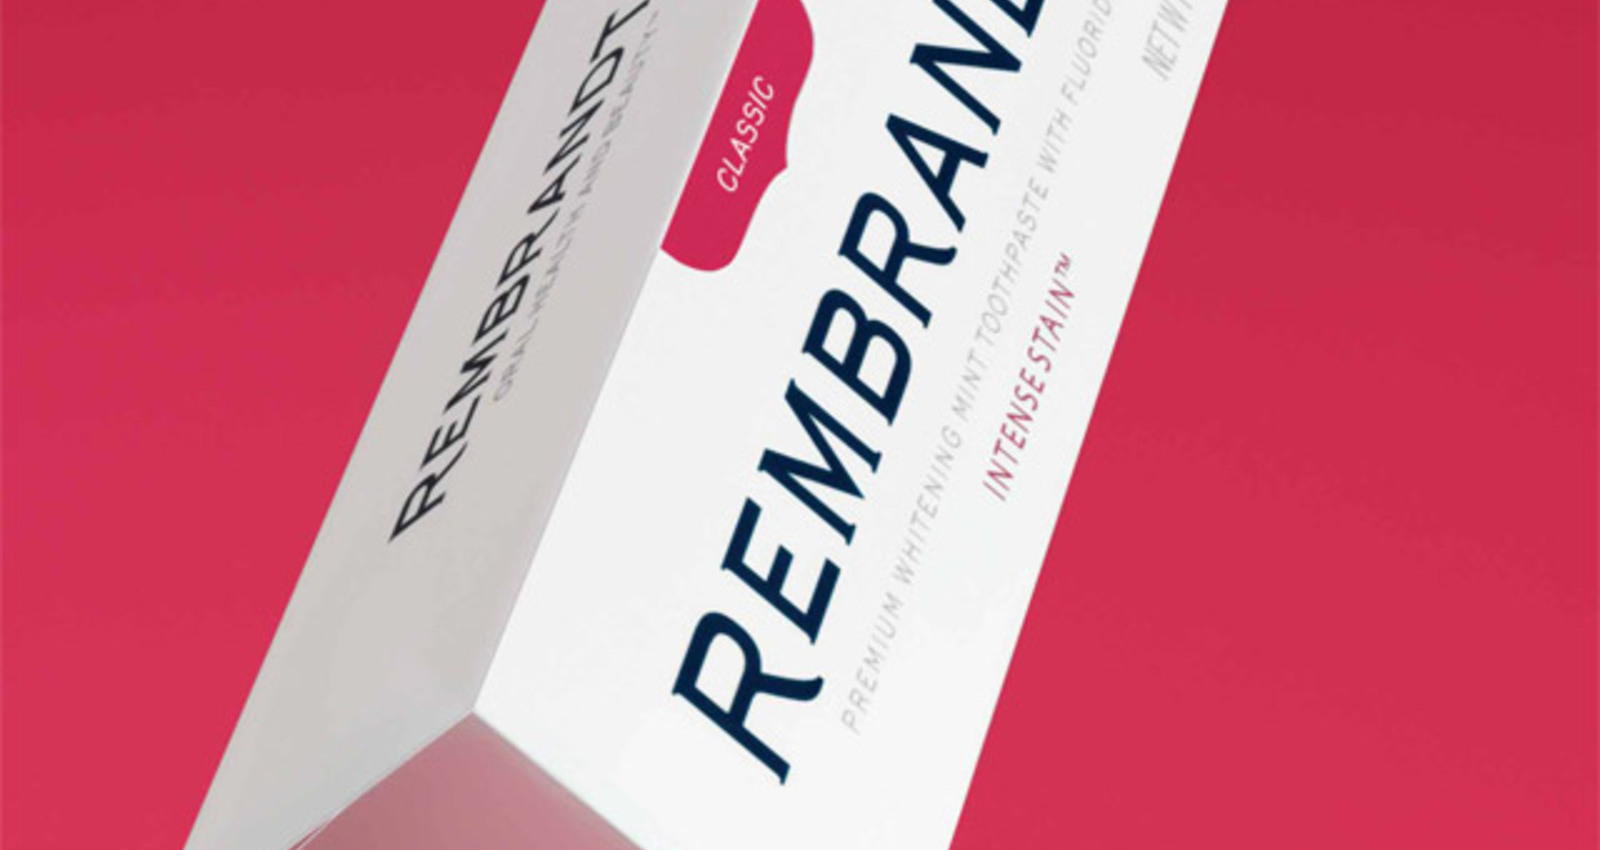 Rembrandt Product Packaging